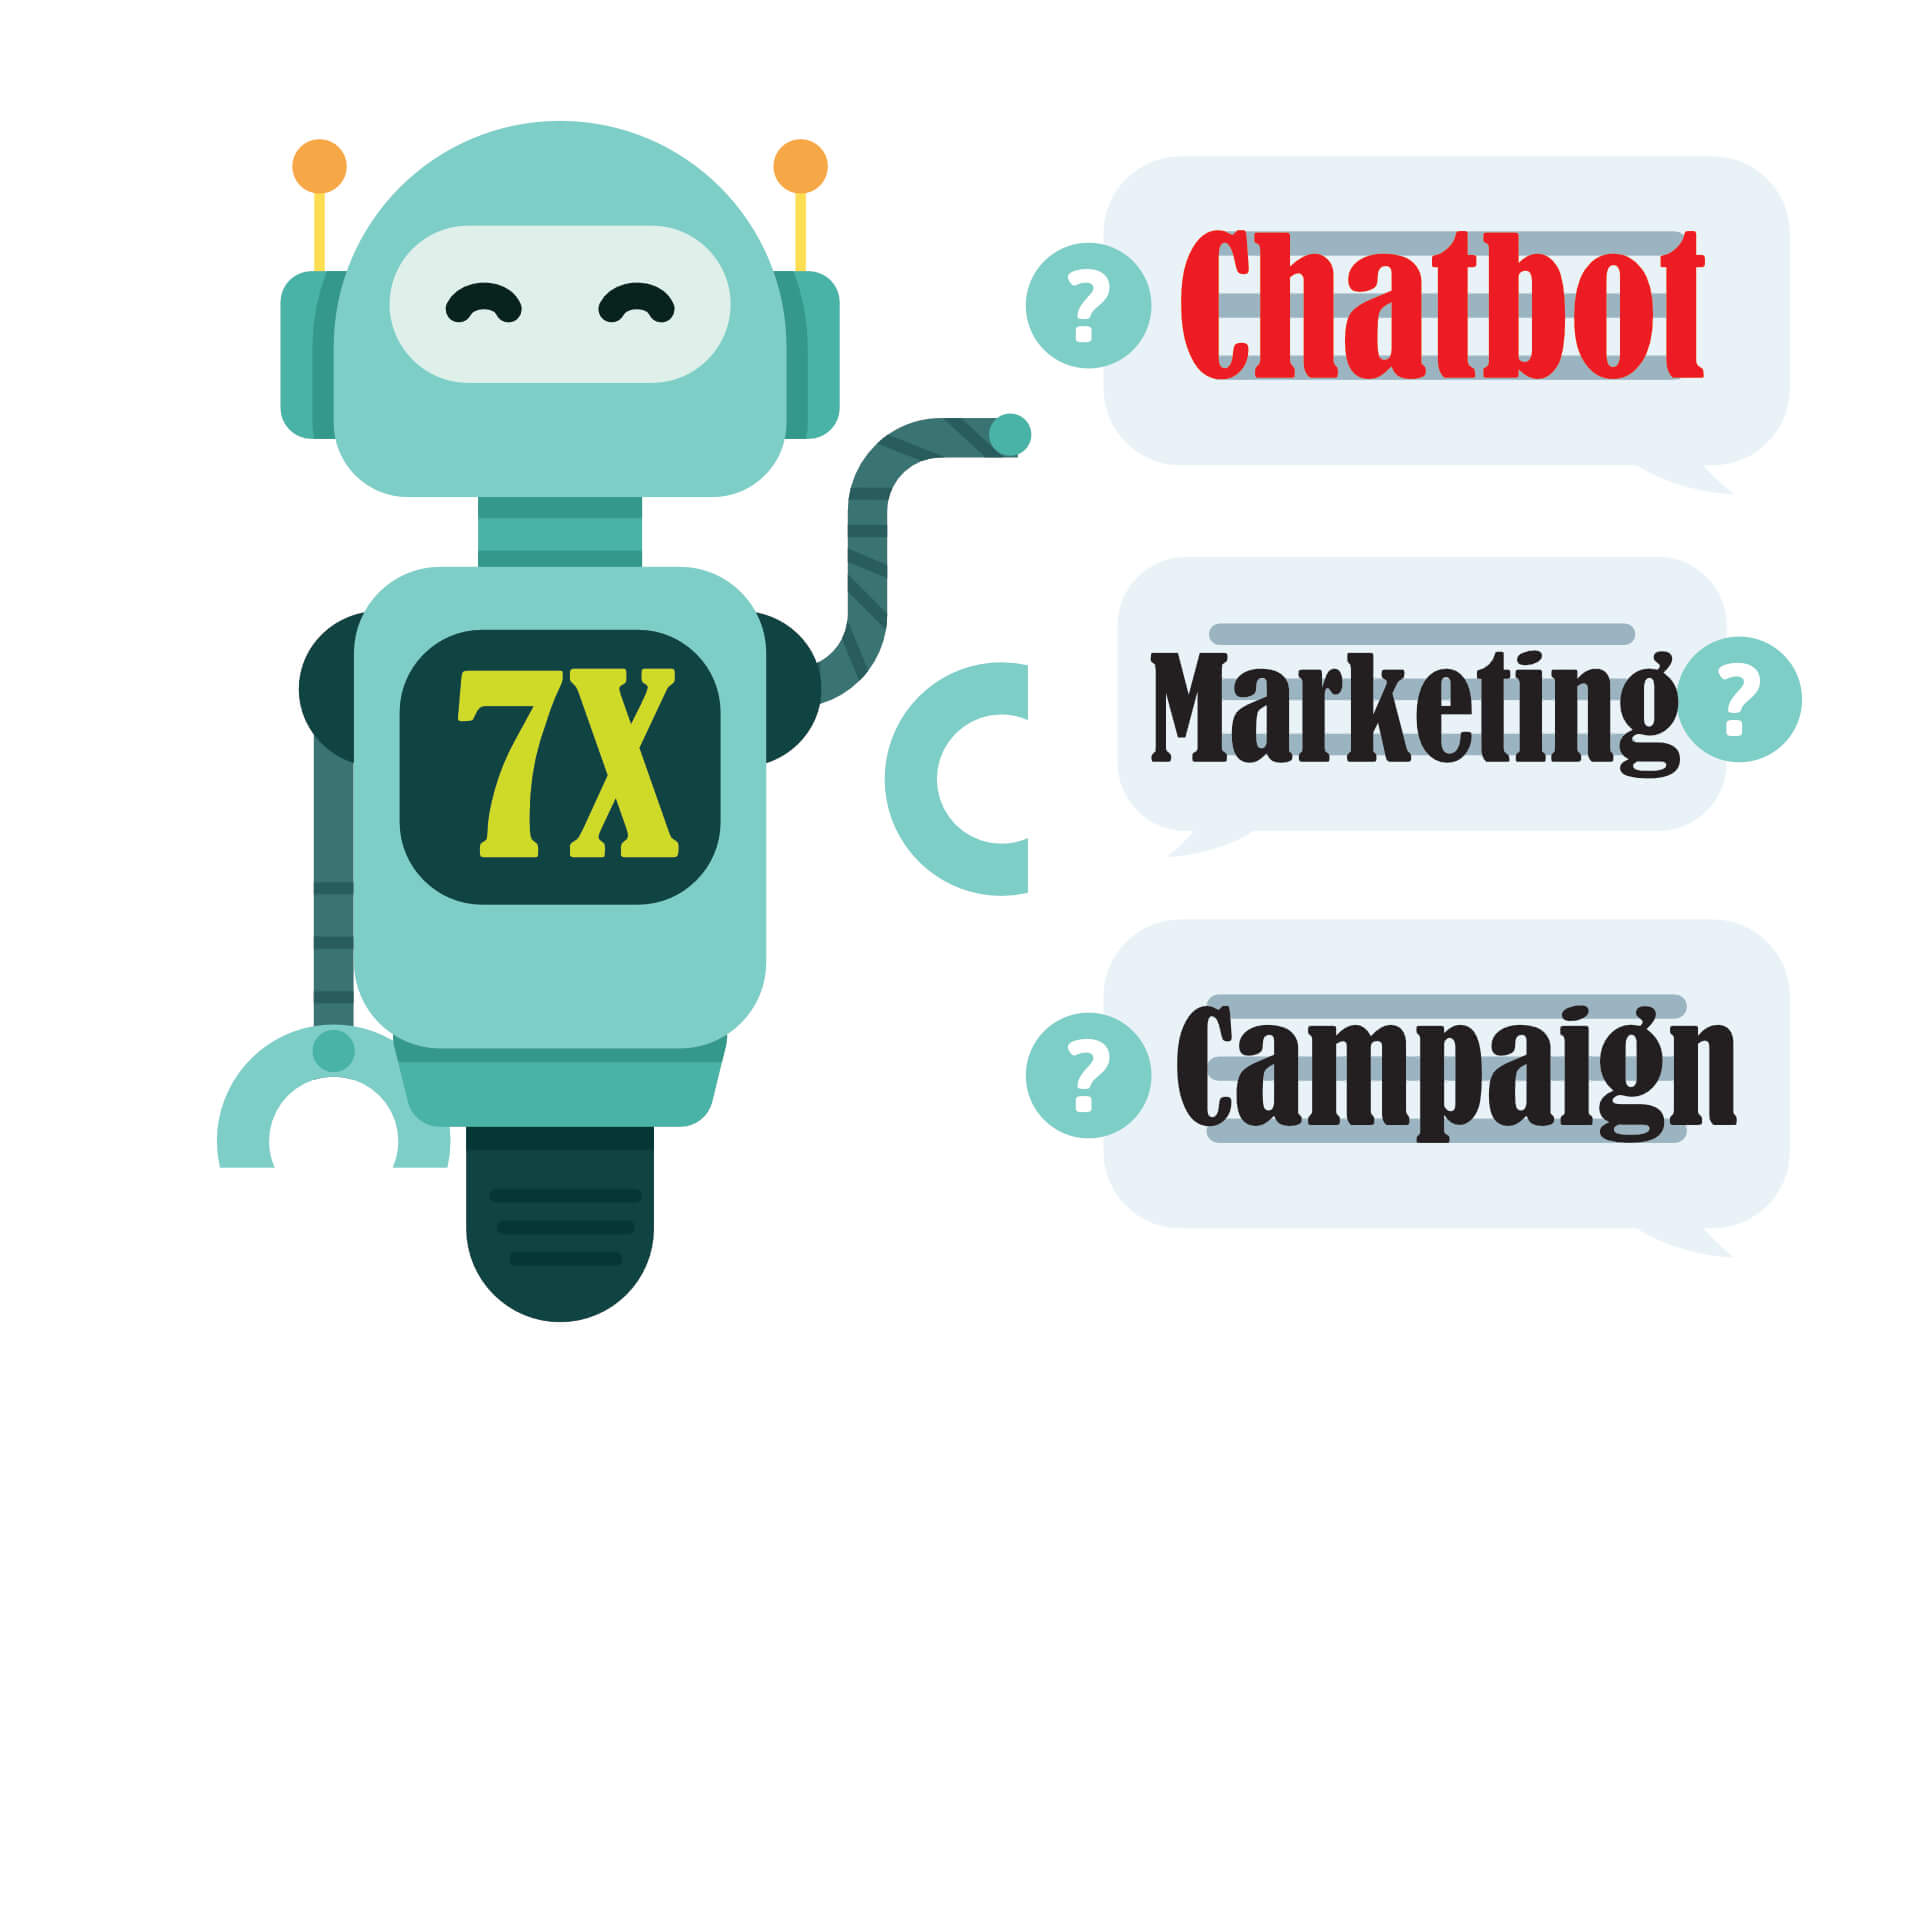 ultimate-chatbot-marketing-campaign